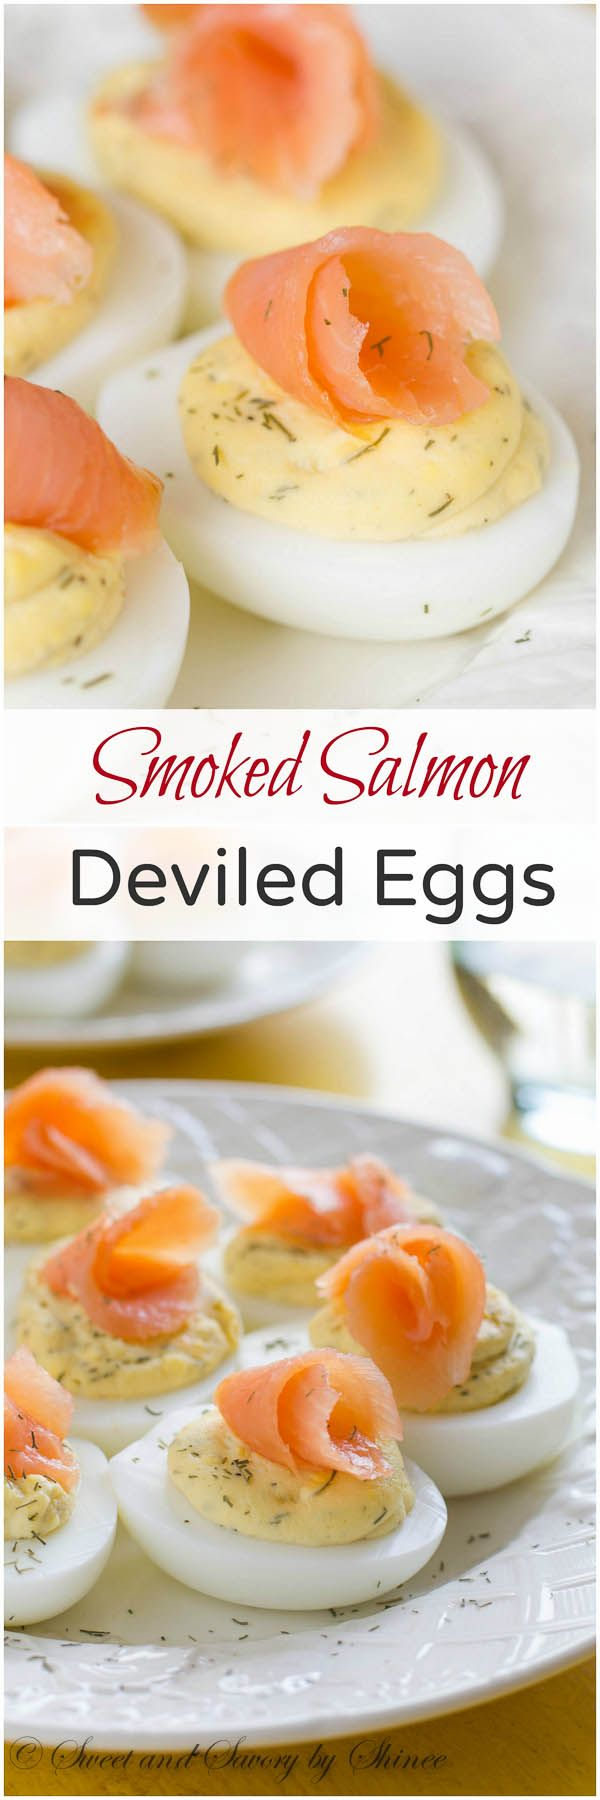 Simple, classic deviled eggs fancied up with smoked salmon. Sophisticated, beautiful, and most importantly, delicious!